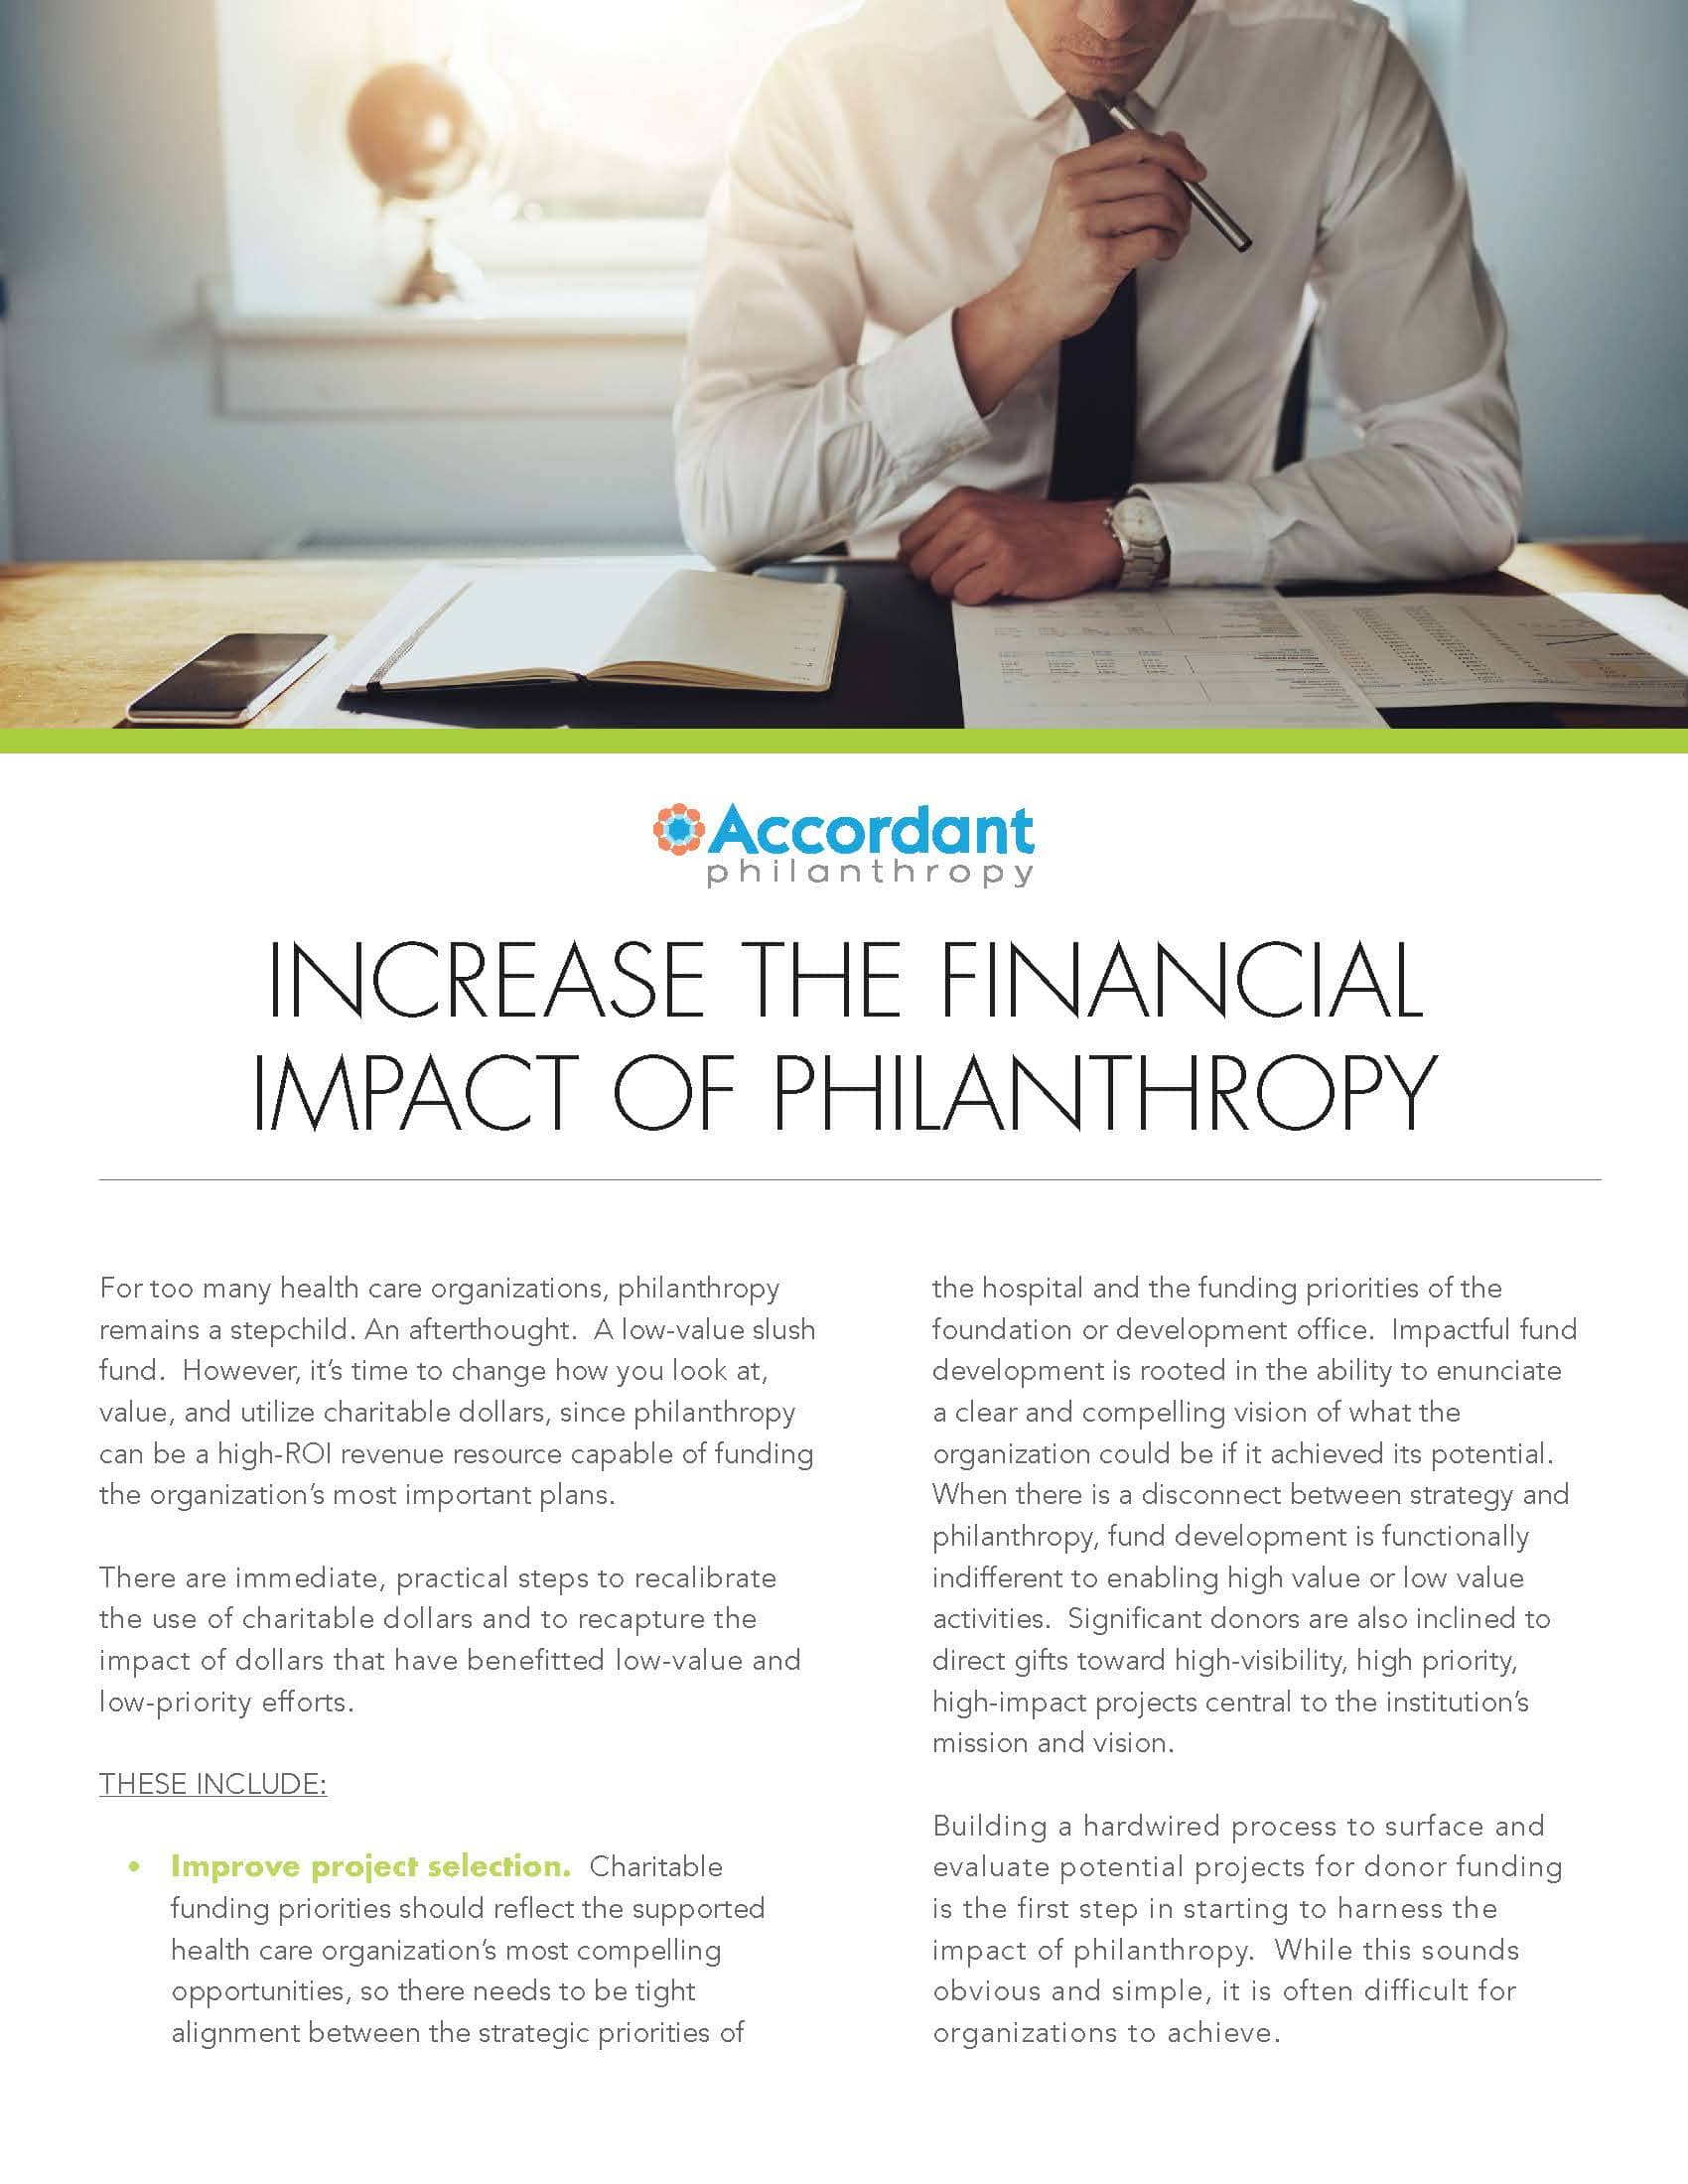 Increase the Financial Impact of Philanthropy